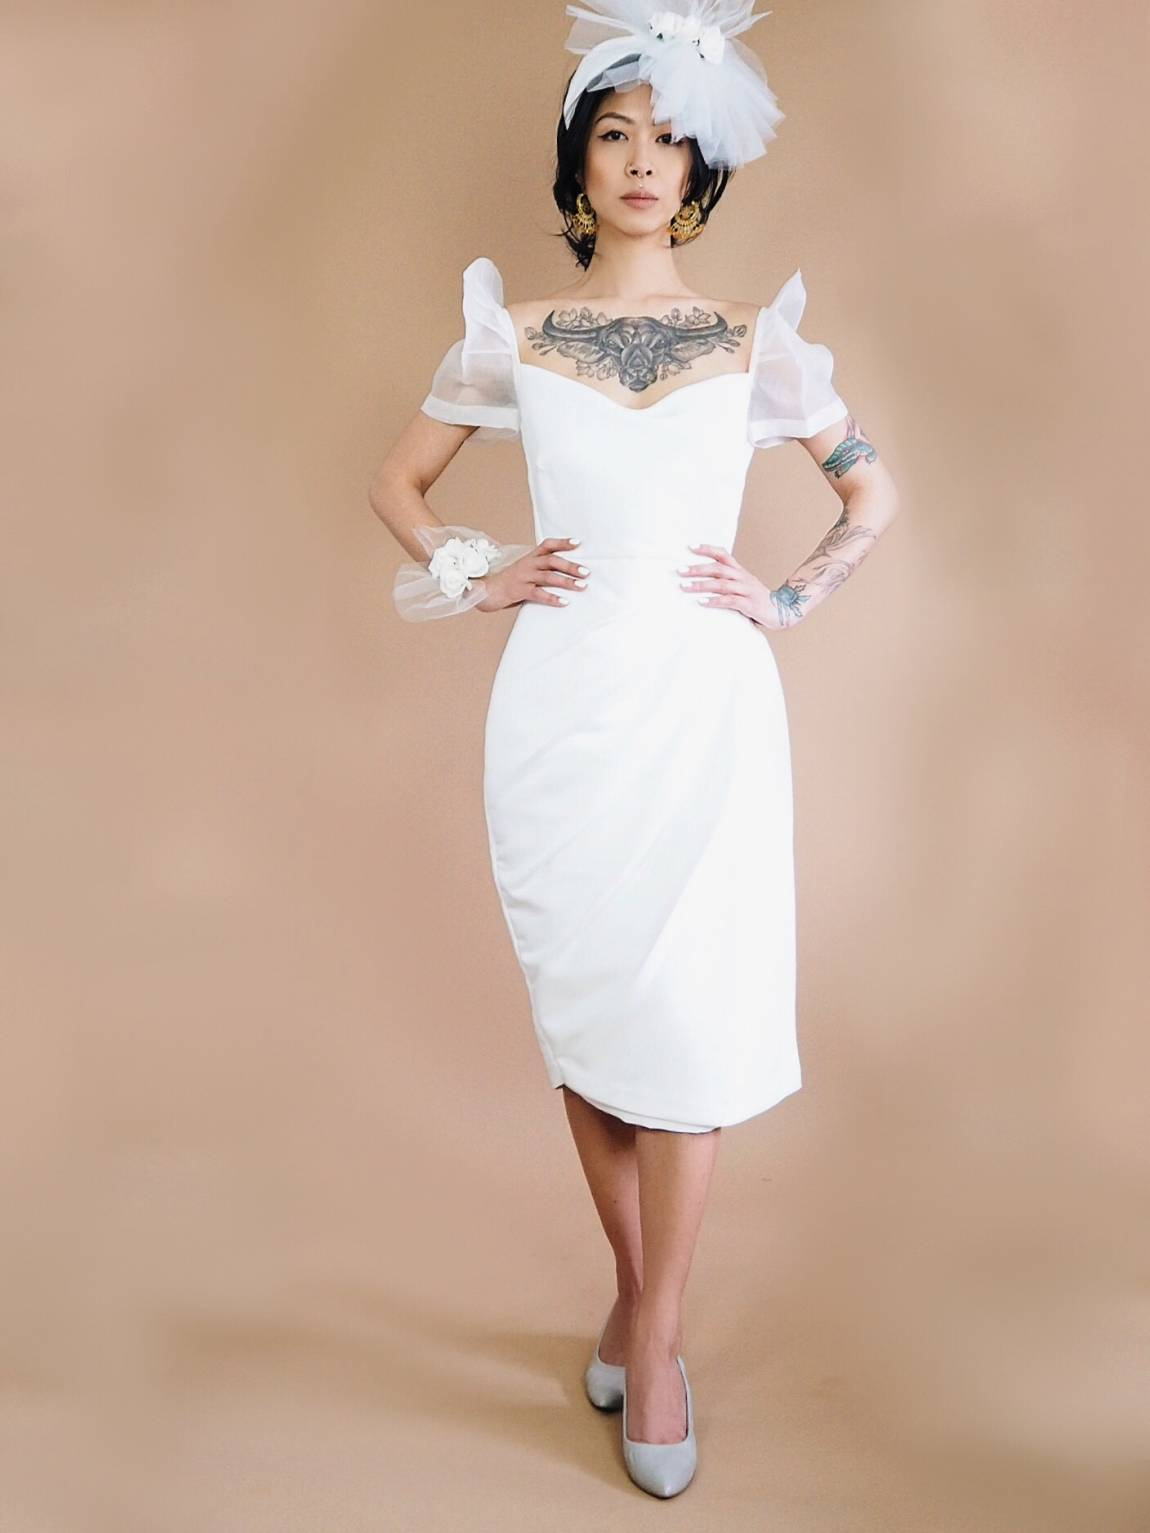 VINTA Drape Front Terno, white, styled with corsage, fascinator, and grey pumps